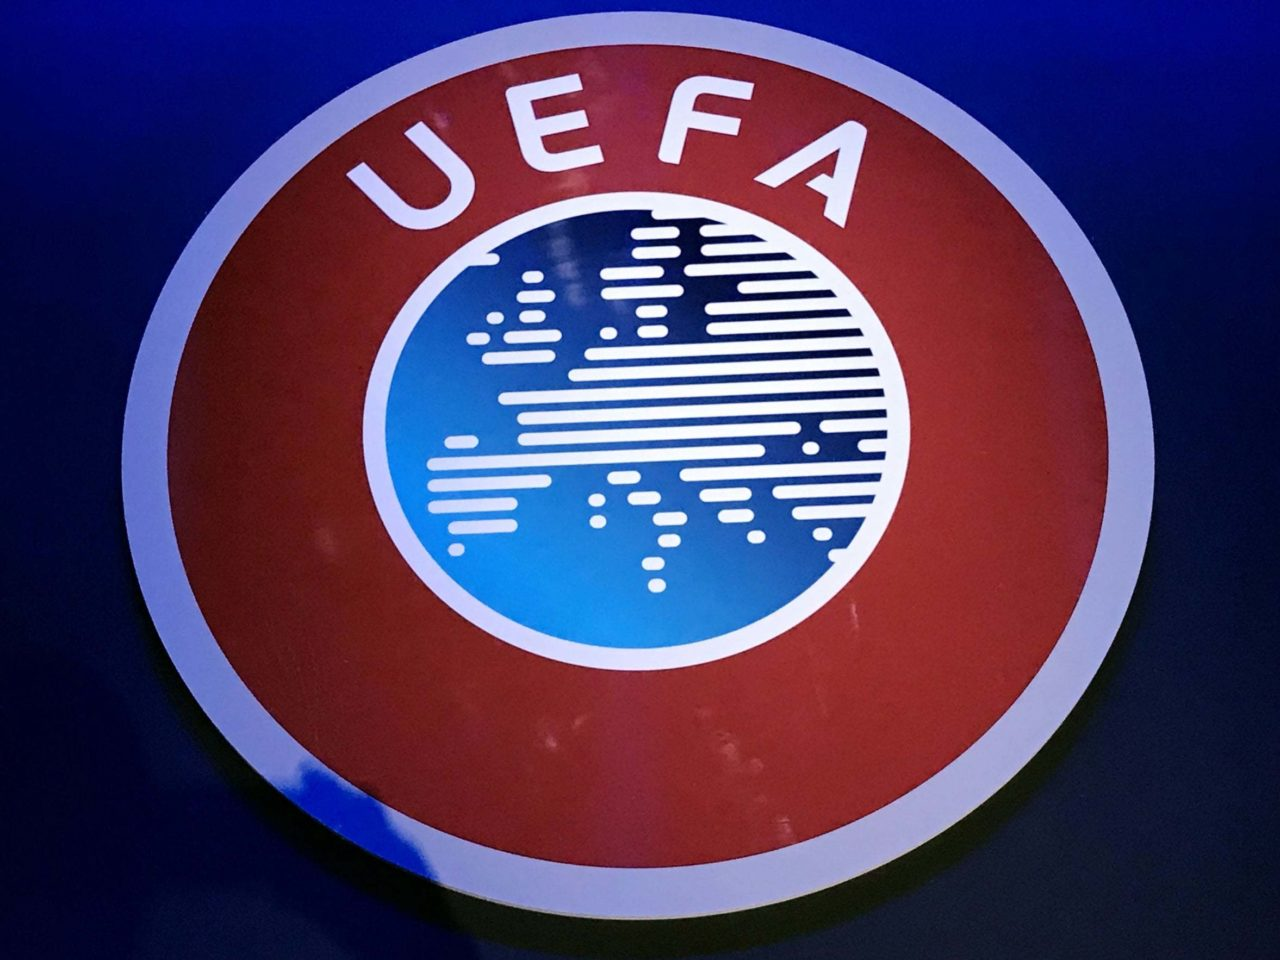 UEFA continues to emphasize the completion of the domestic championships